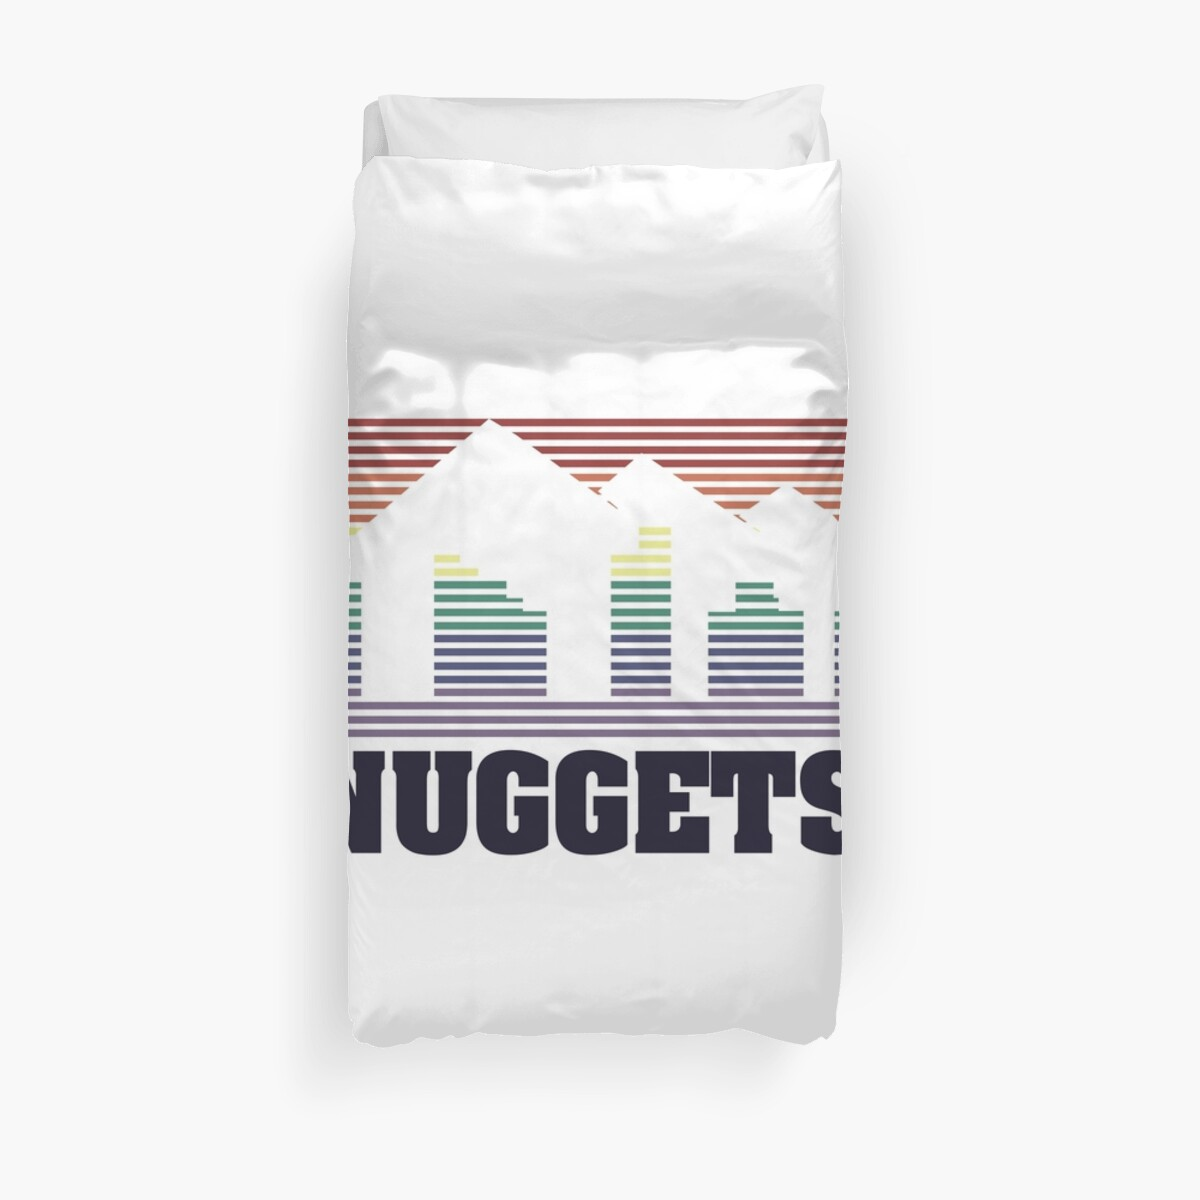 Nuggets Edition Duvet Cover